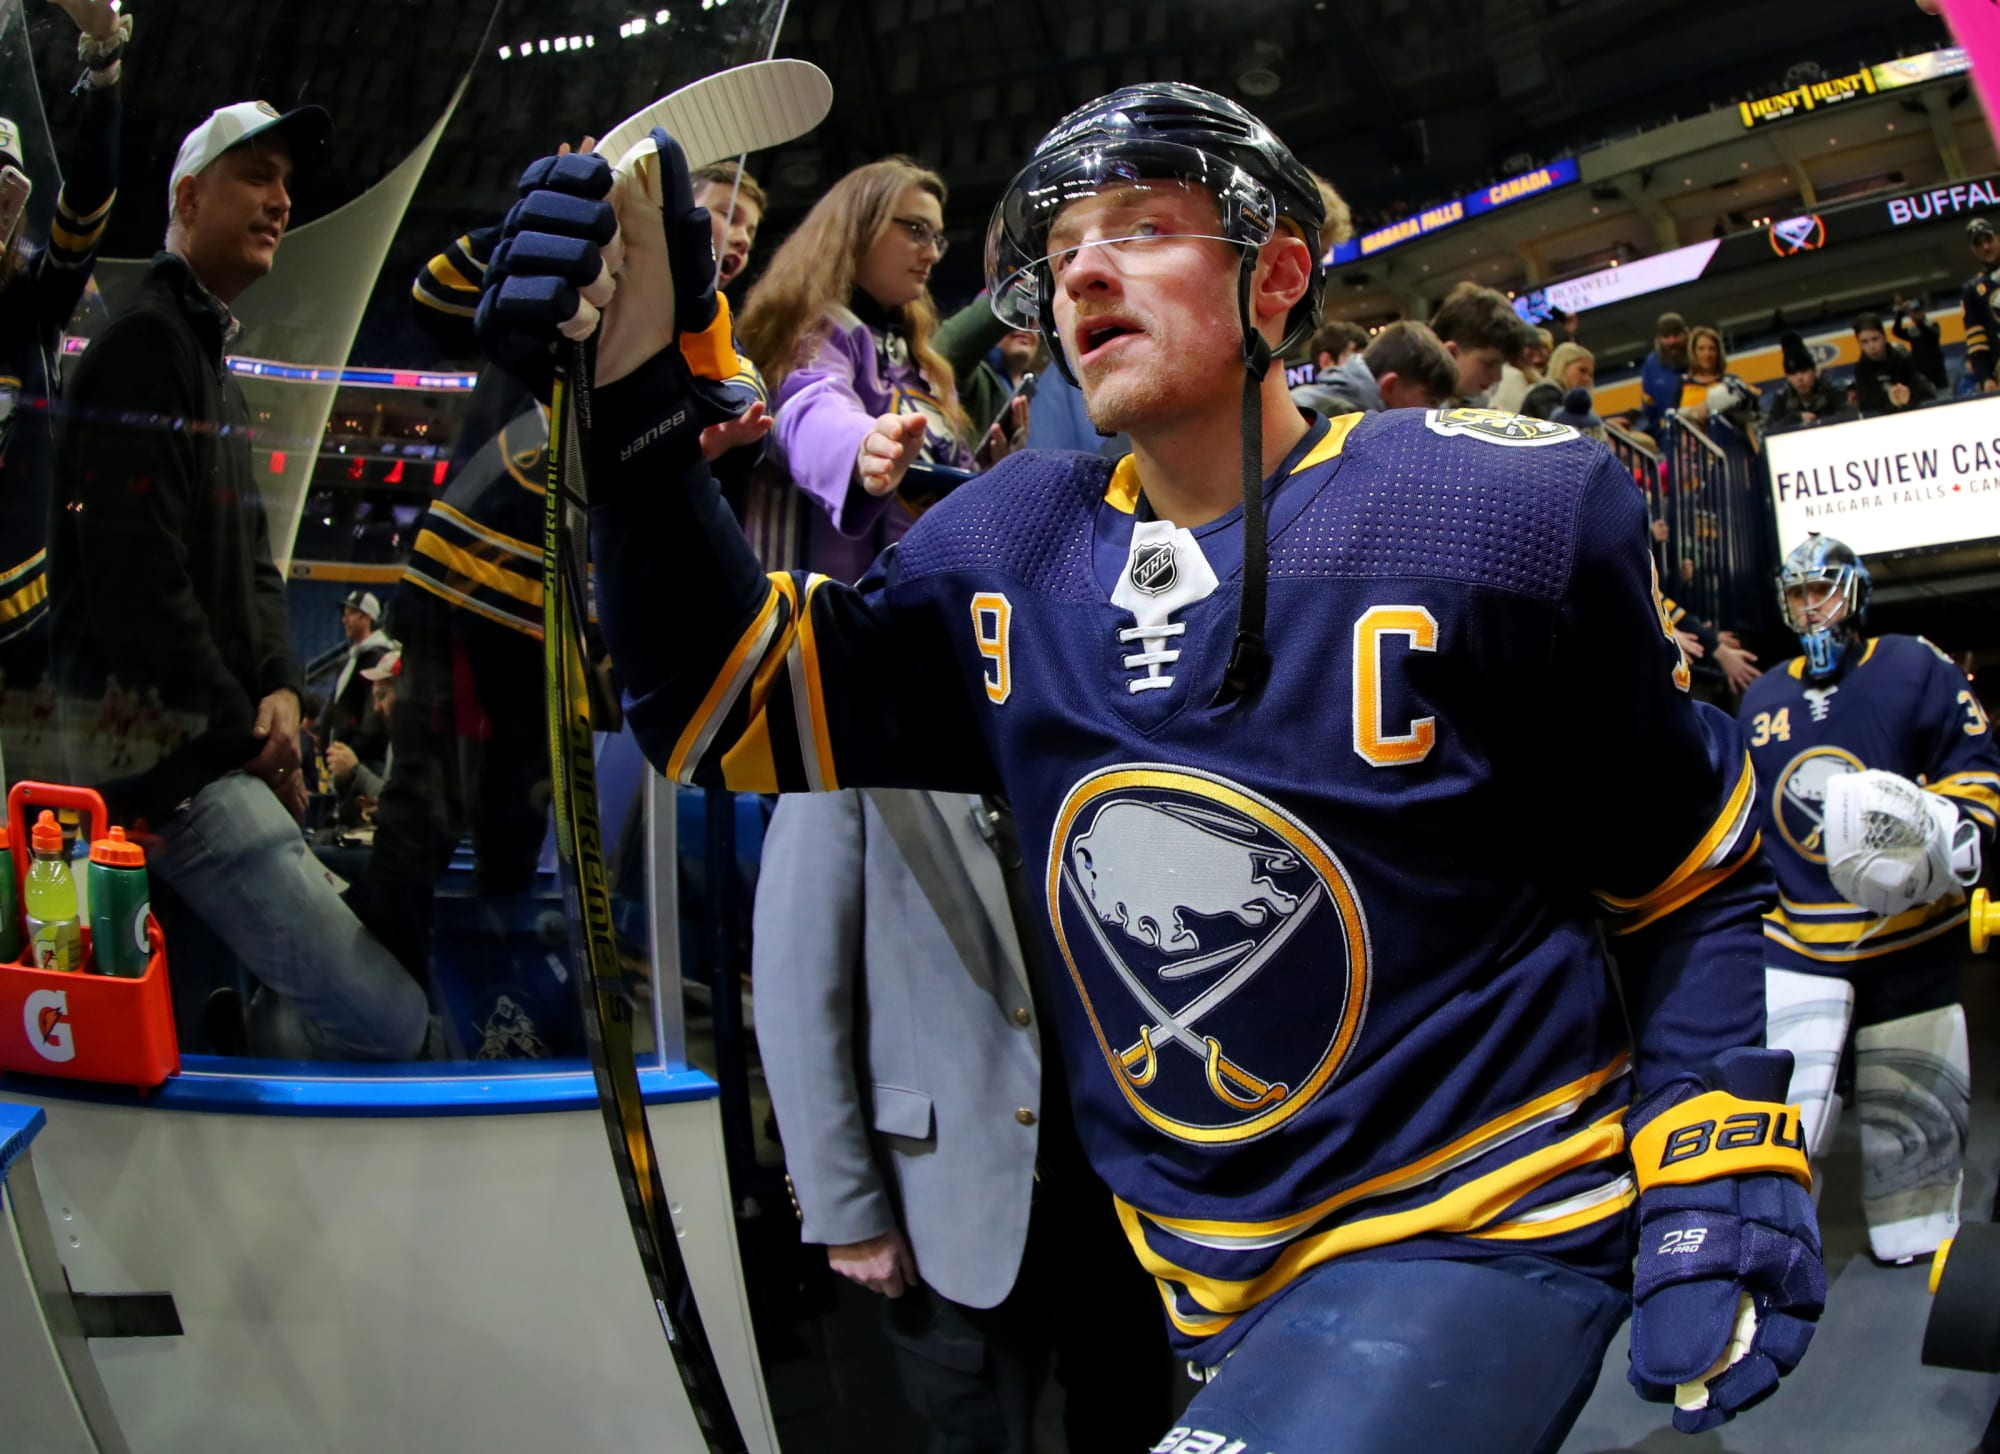 The Buffalo Sabres Drama With Jack Eichel Is Bad For The NHL